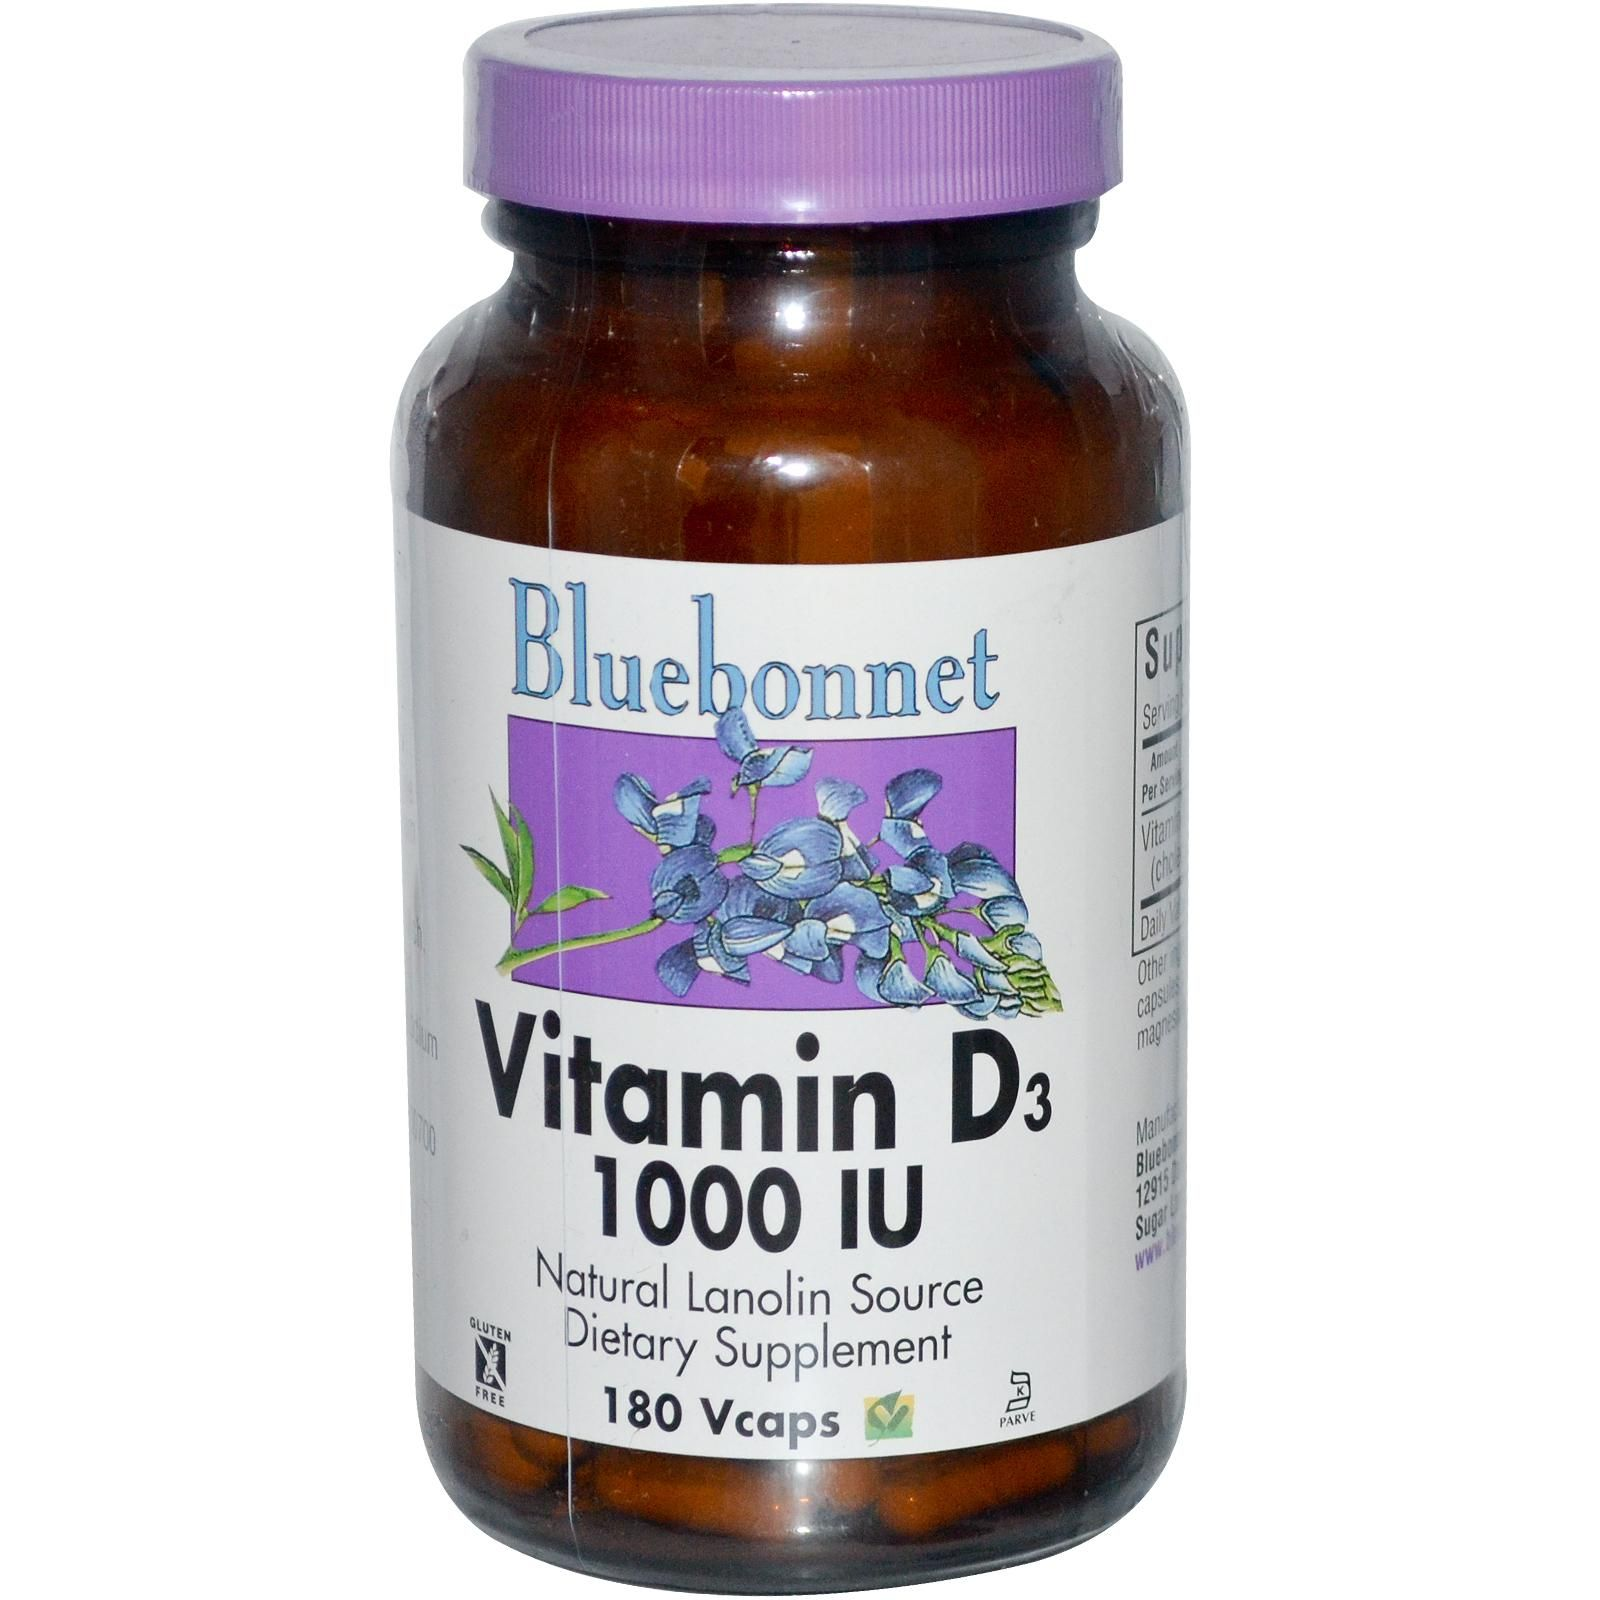 Nutrition, Vitamin D3, 1000 IU, 180 Veggie Caps